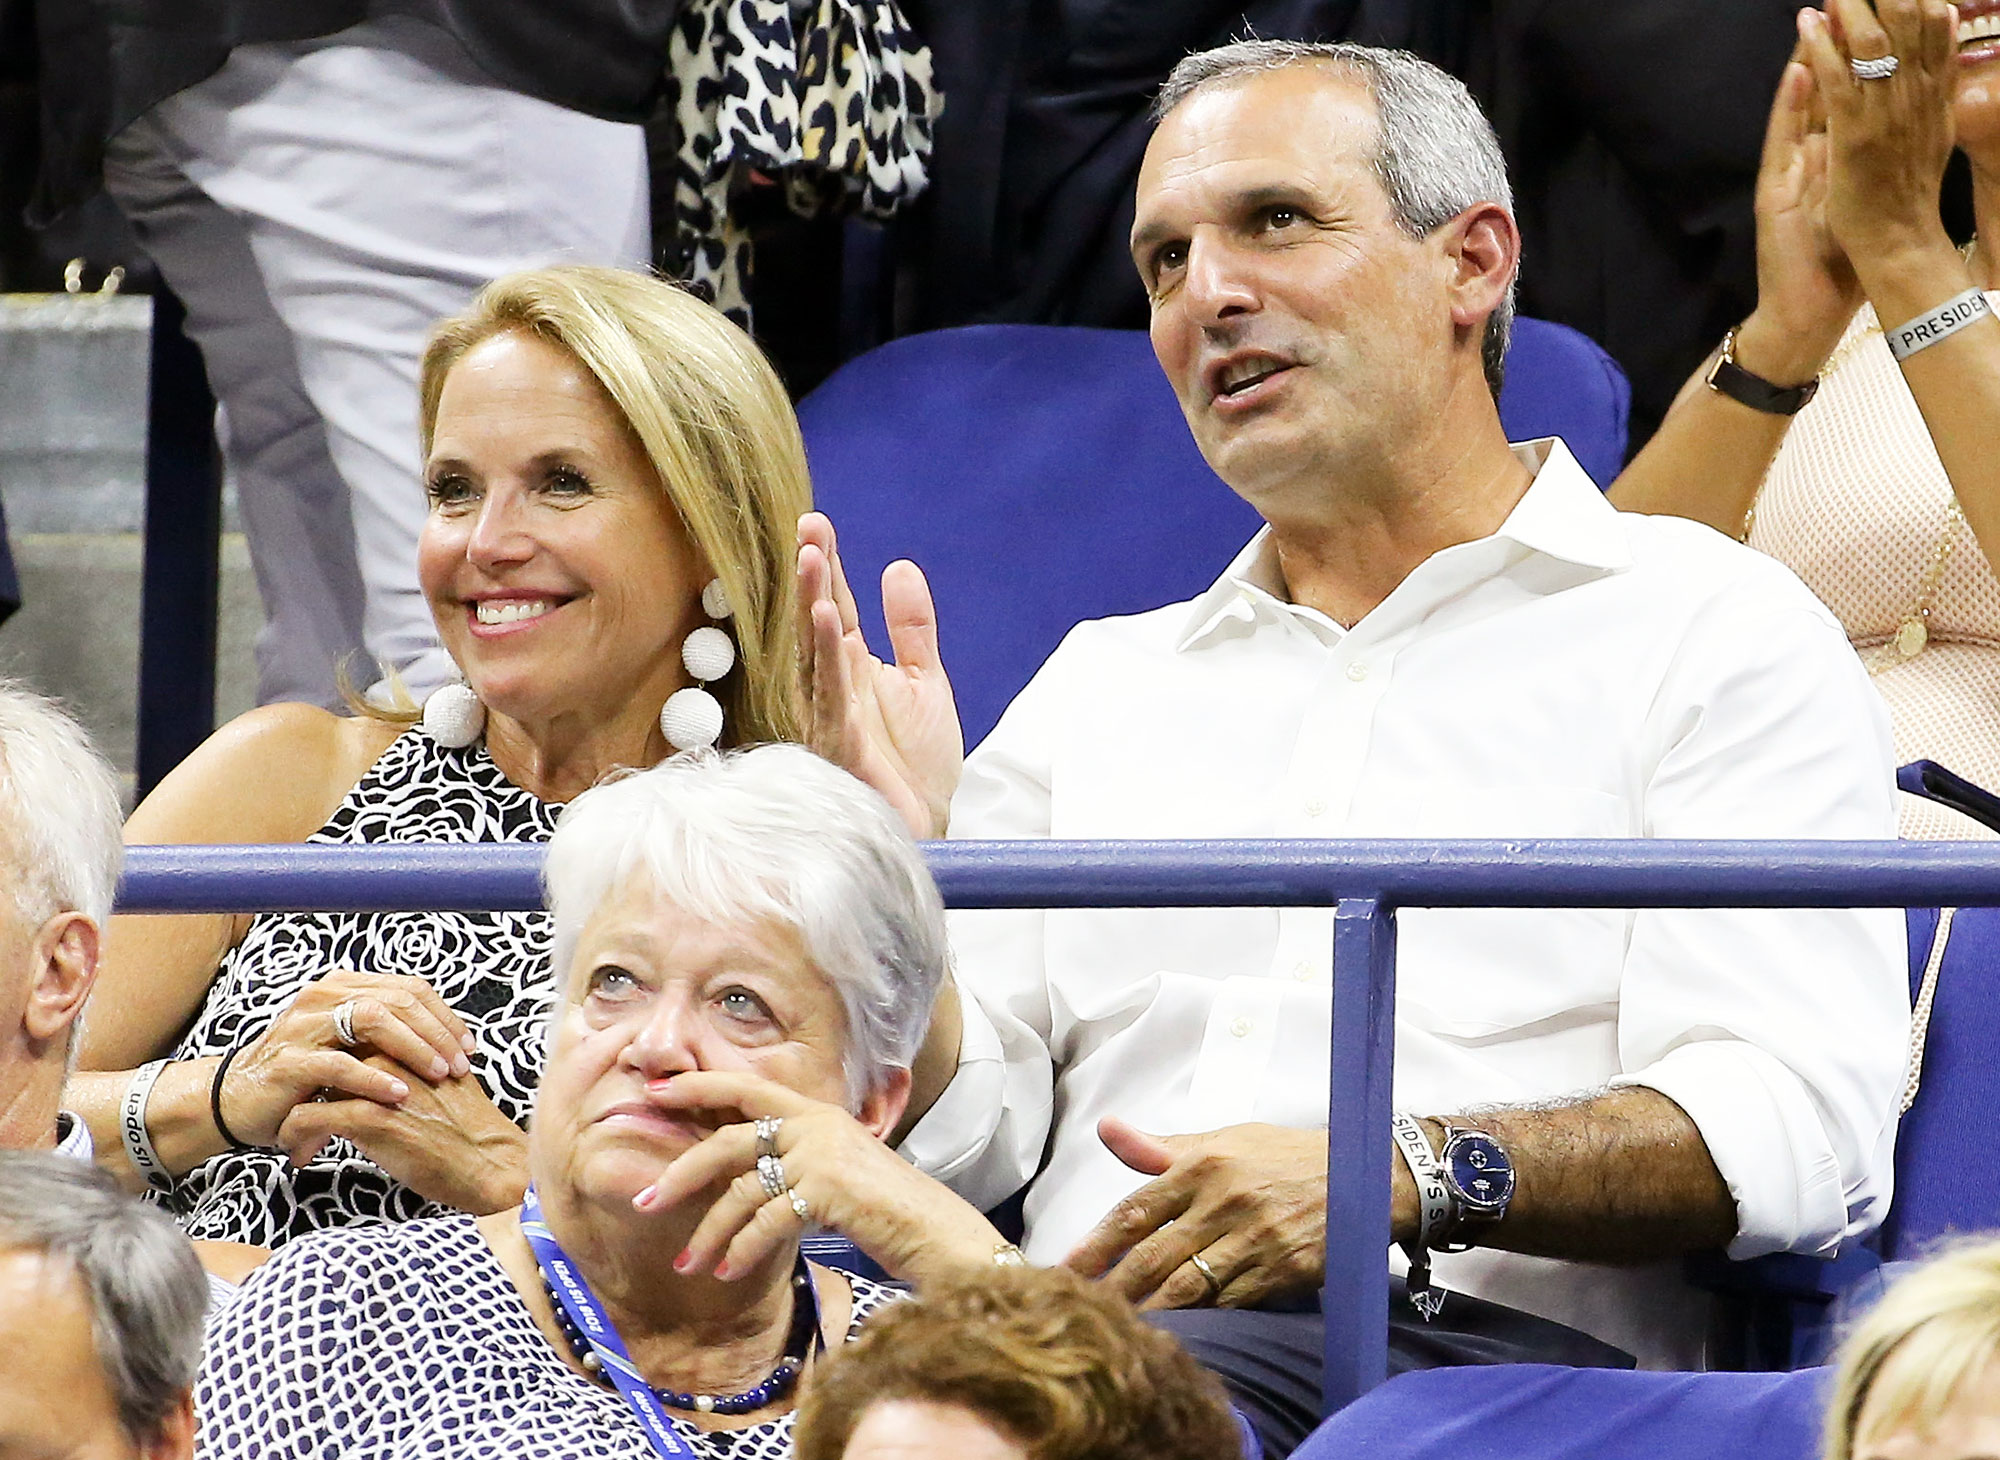 Katie Couric John Molner Us Open 2018 - The journalist and her husband were all smiles on August 27.